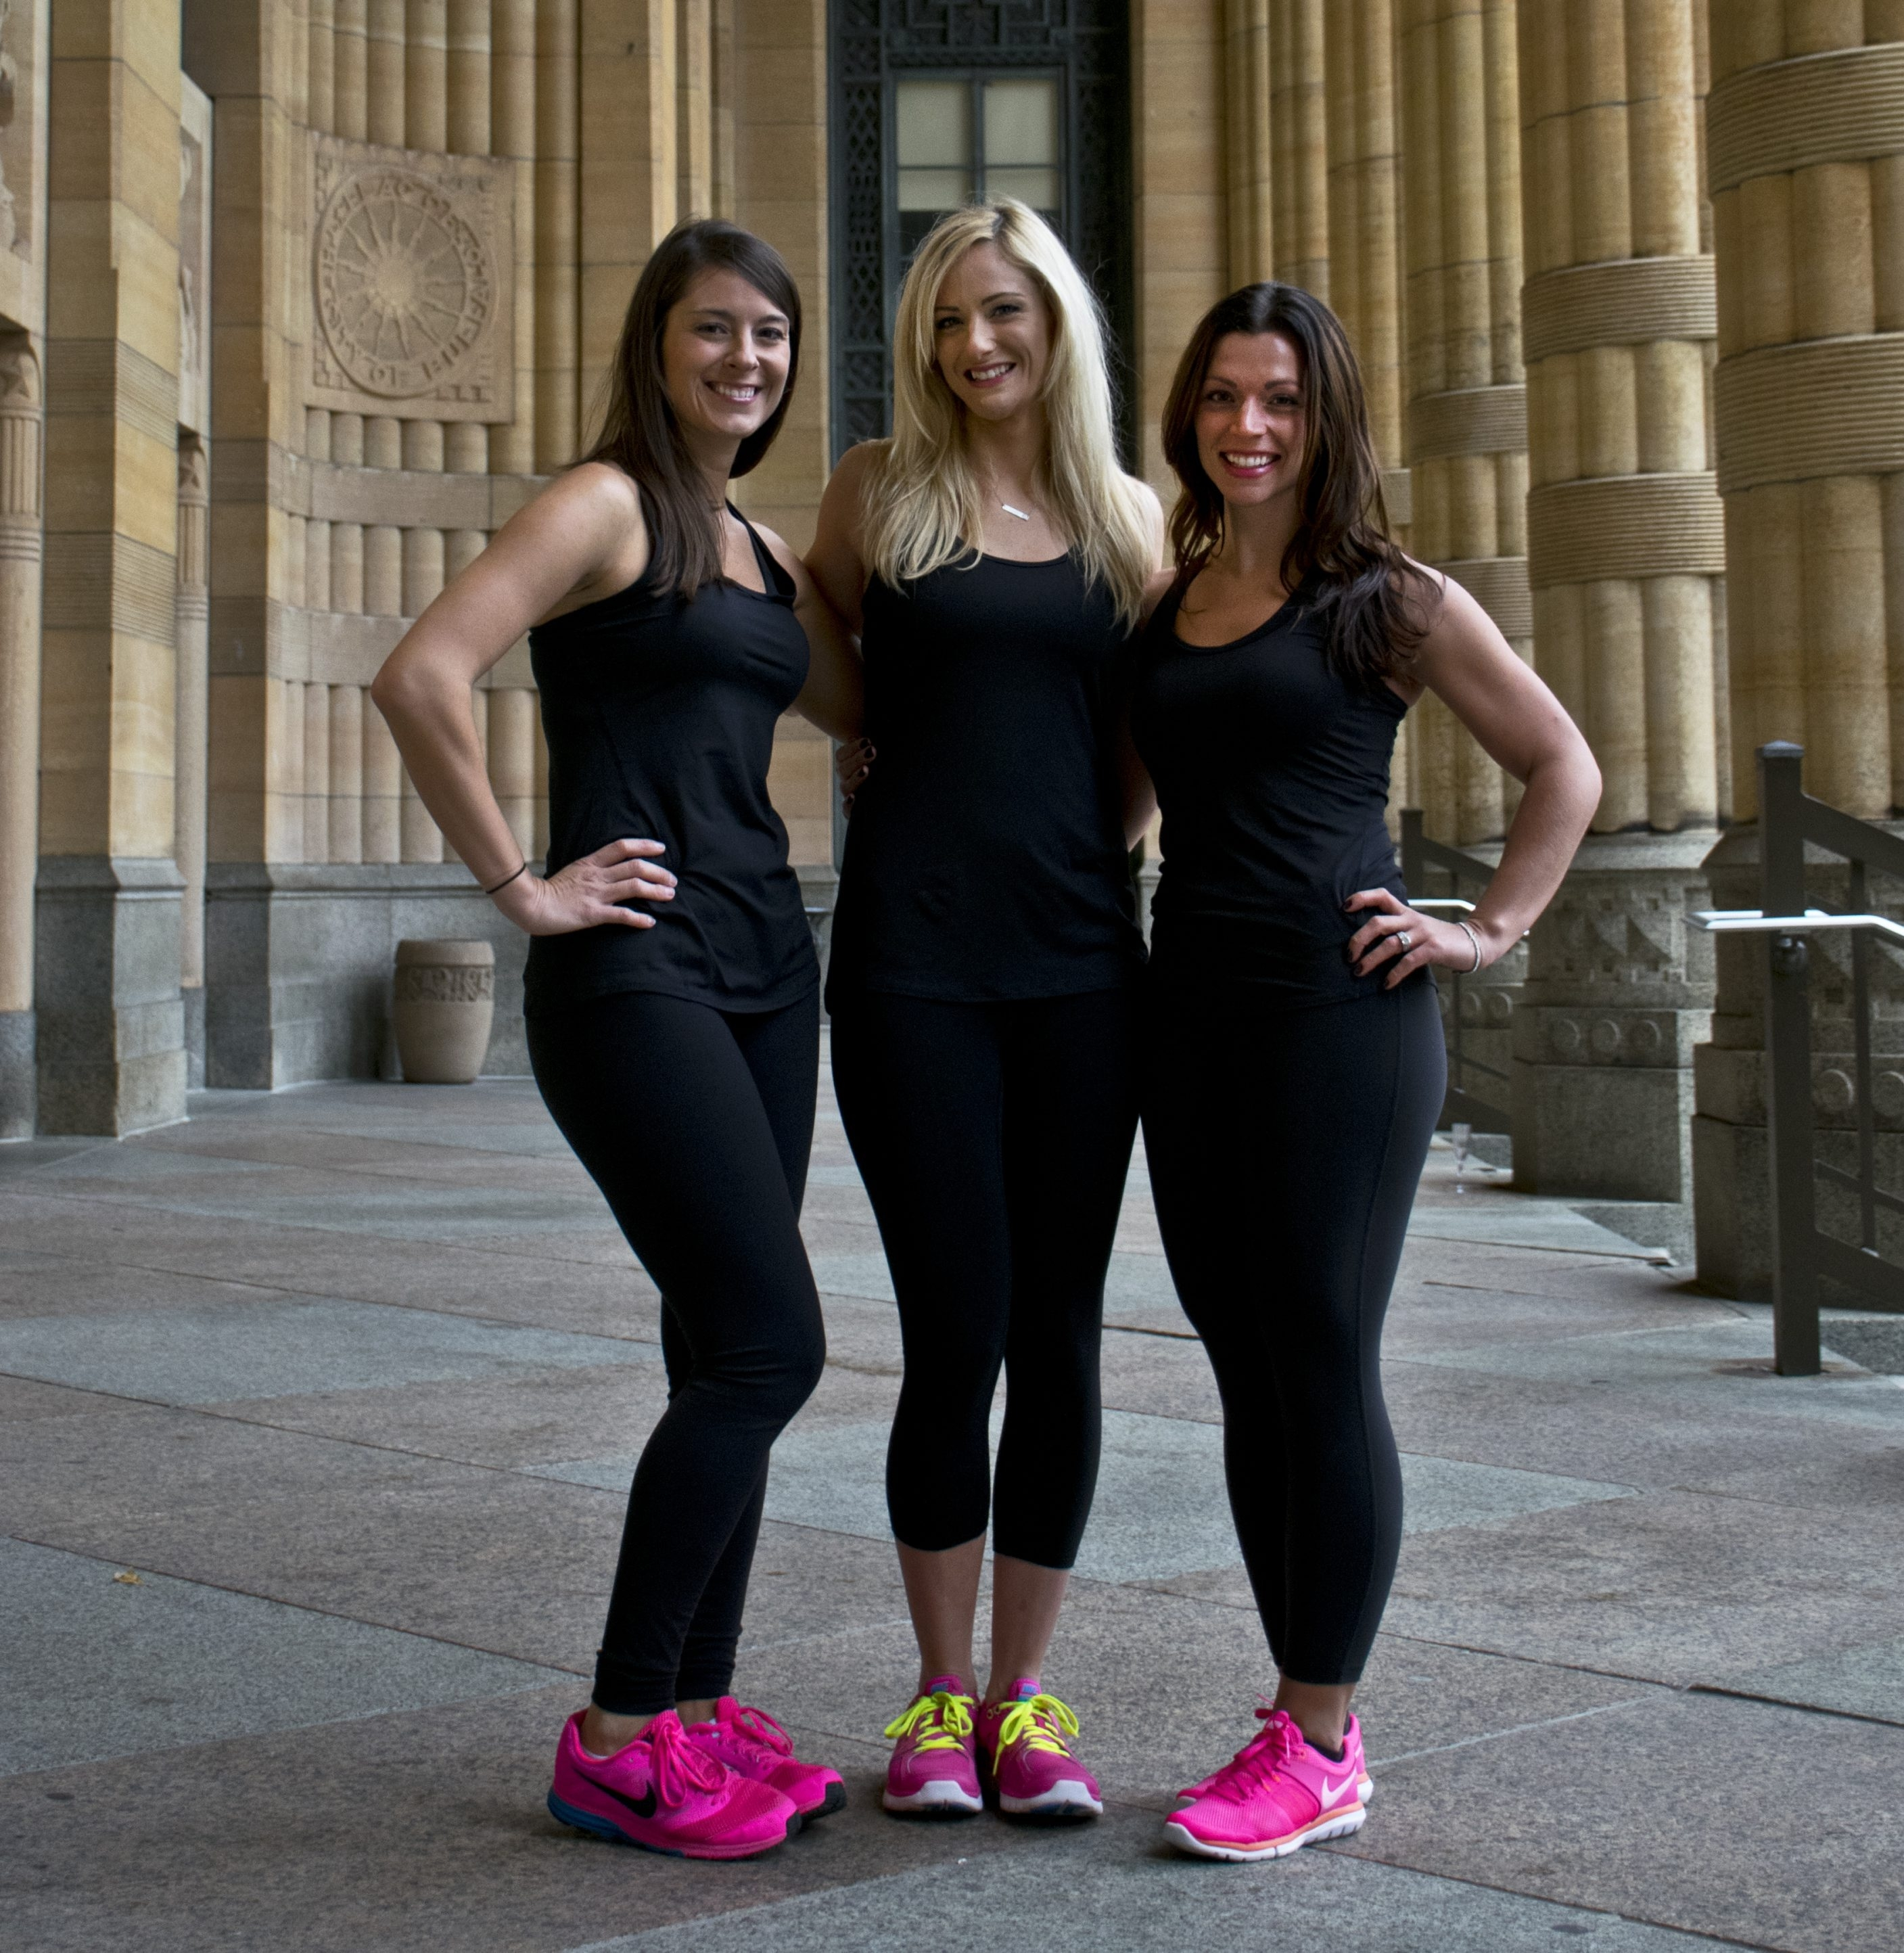 Revolution Indoor Cycling owners, from left, Colleen Kirk, Amanda Moses and Rachel McCrone.